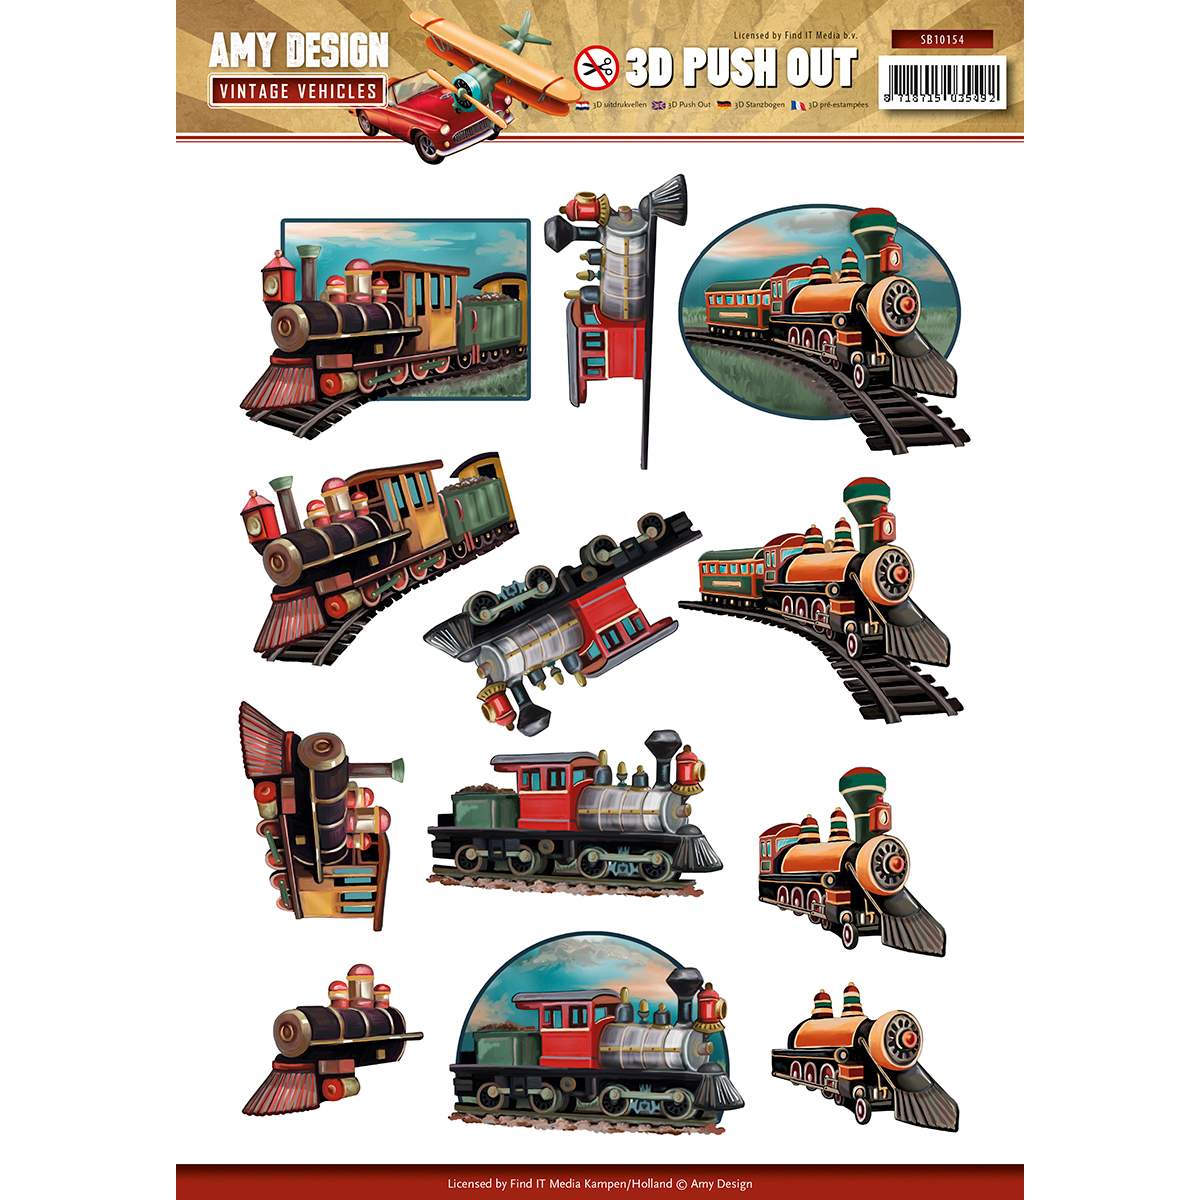 Trains - Find It Amy Design Vintage Vehicles Punchout Sheet